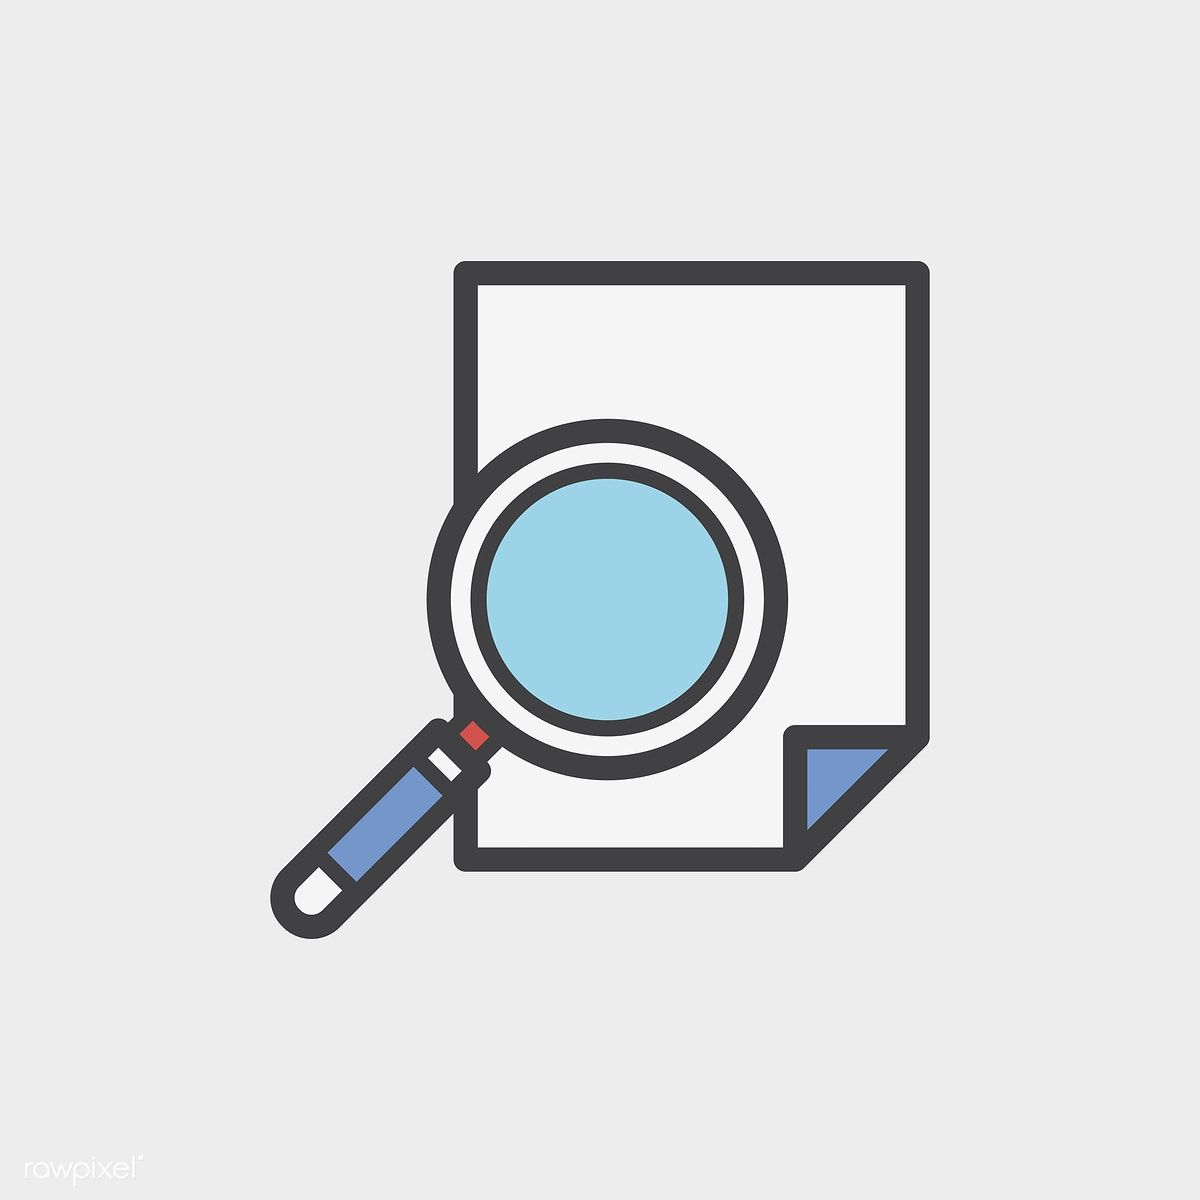 Illustration of magnifying glass icon free image by